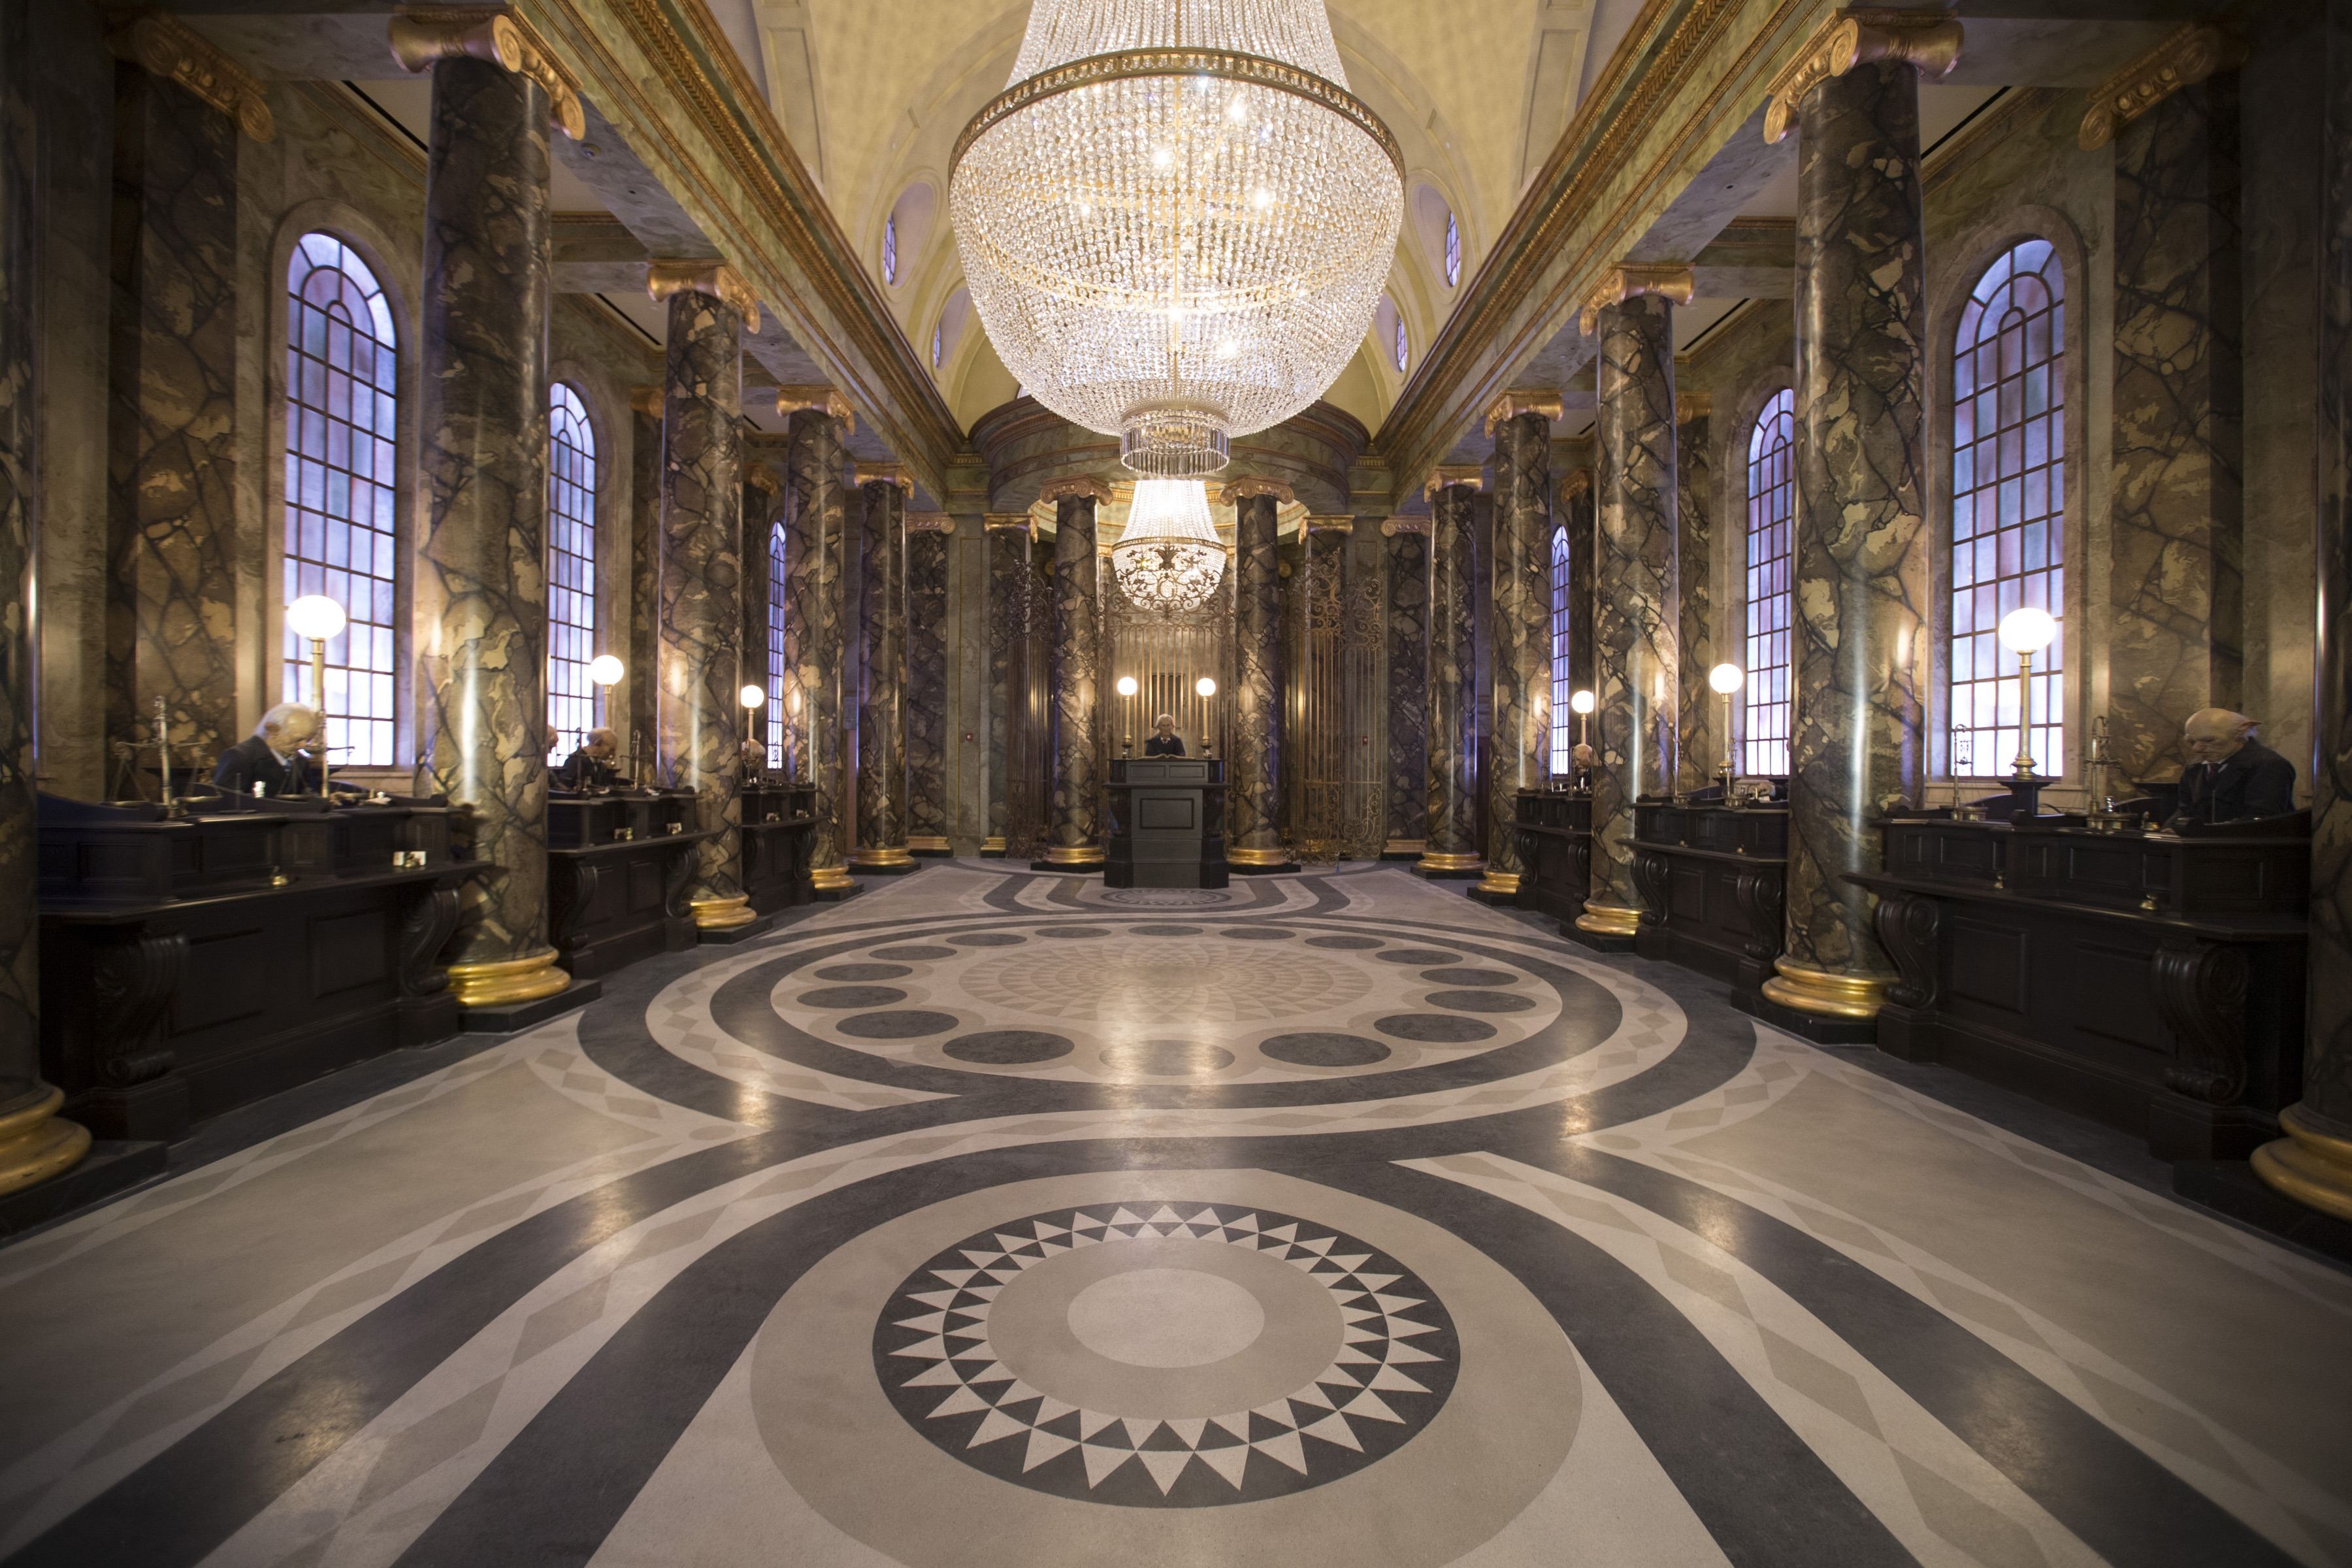 Image from Harry Potter and the Escape from Gringotts - Marble Hall with Goblins Working